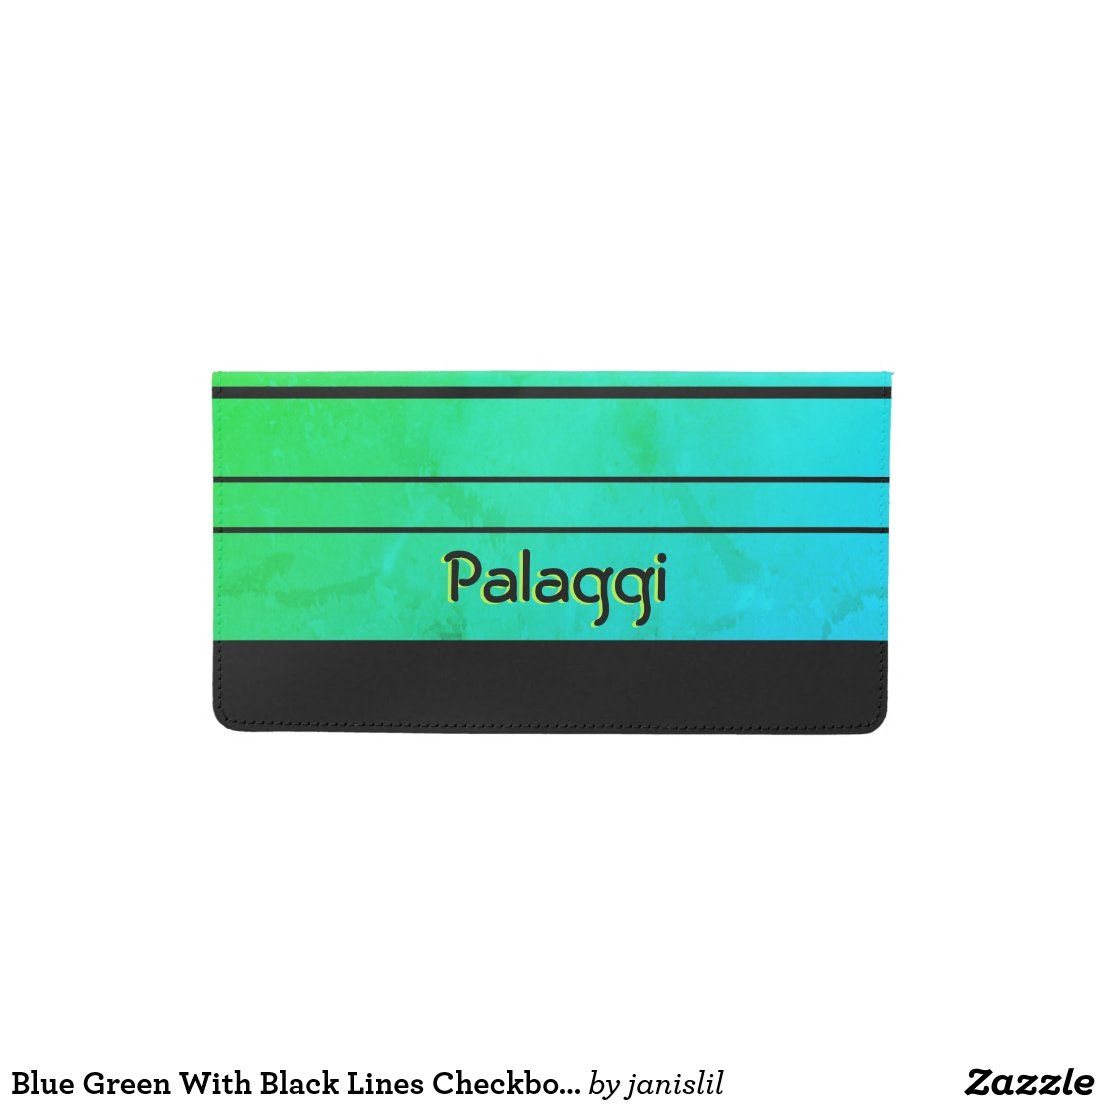 Blue Green With Black Lines Checkbook Cover